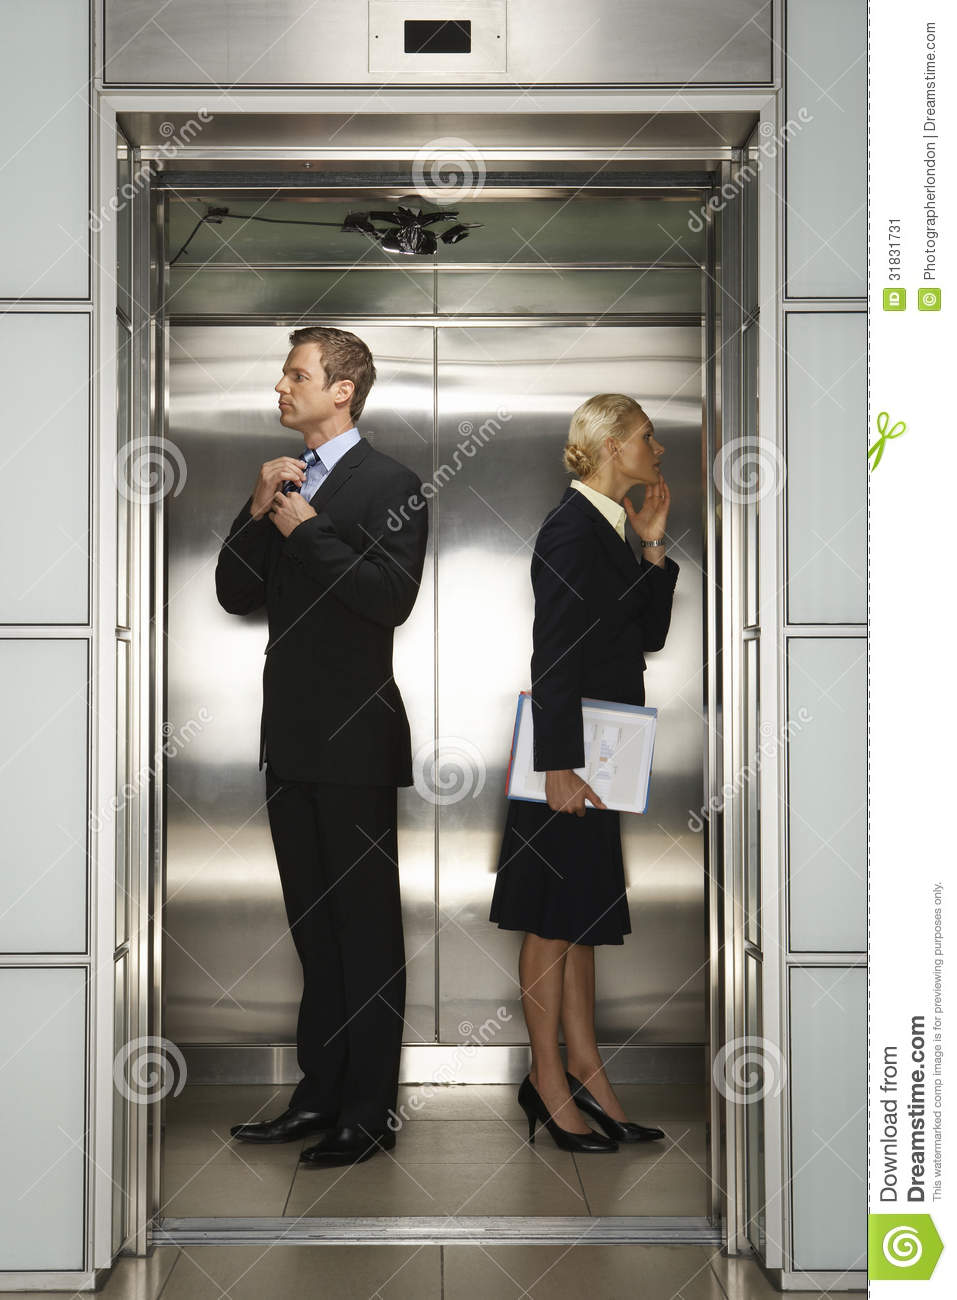 businesspeople preparing for interview in elevator stock image businesspeople preparing for interview in elevator